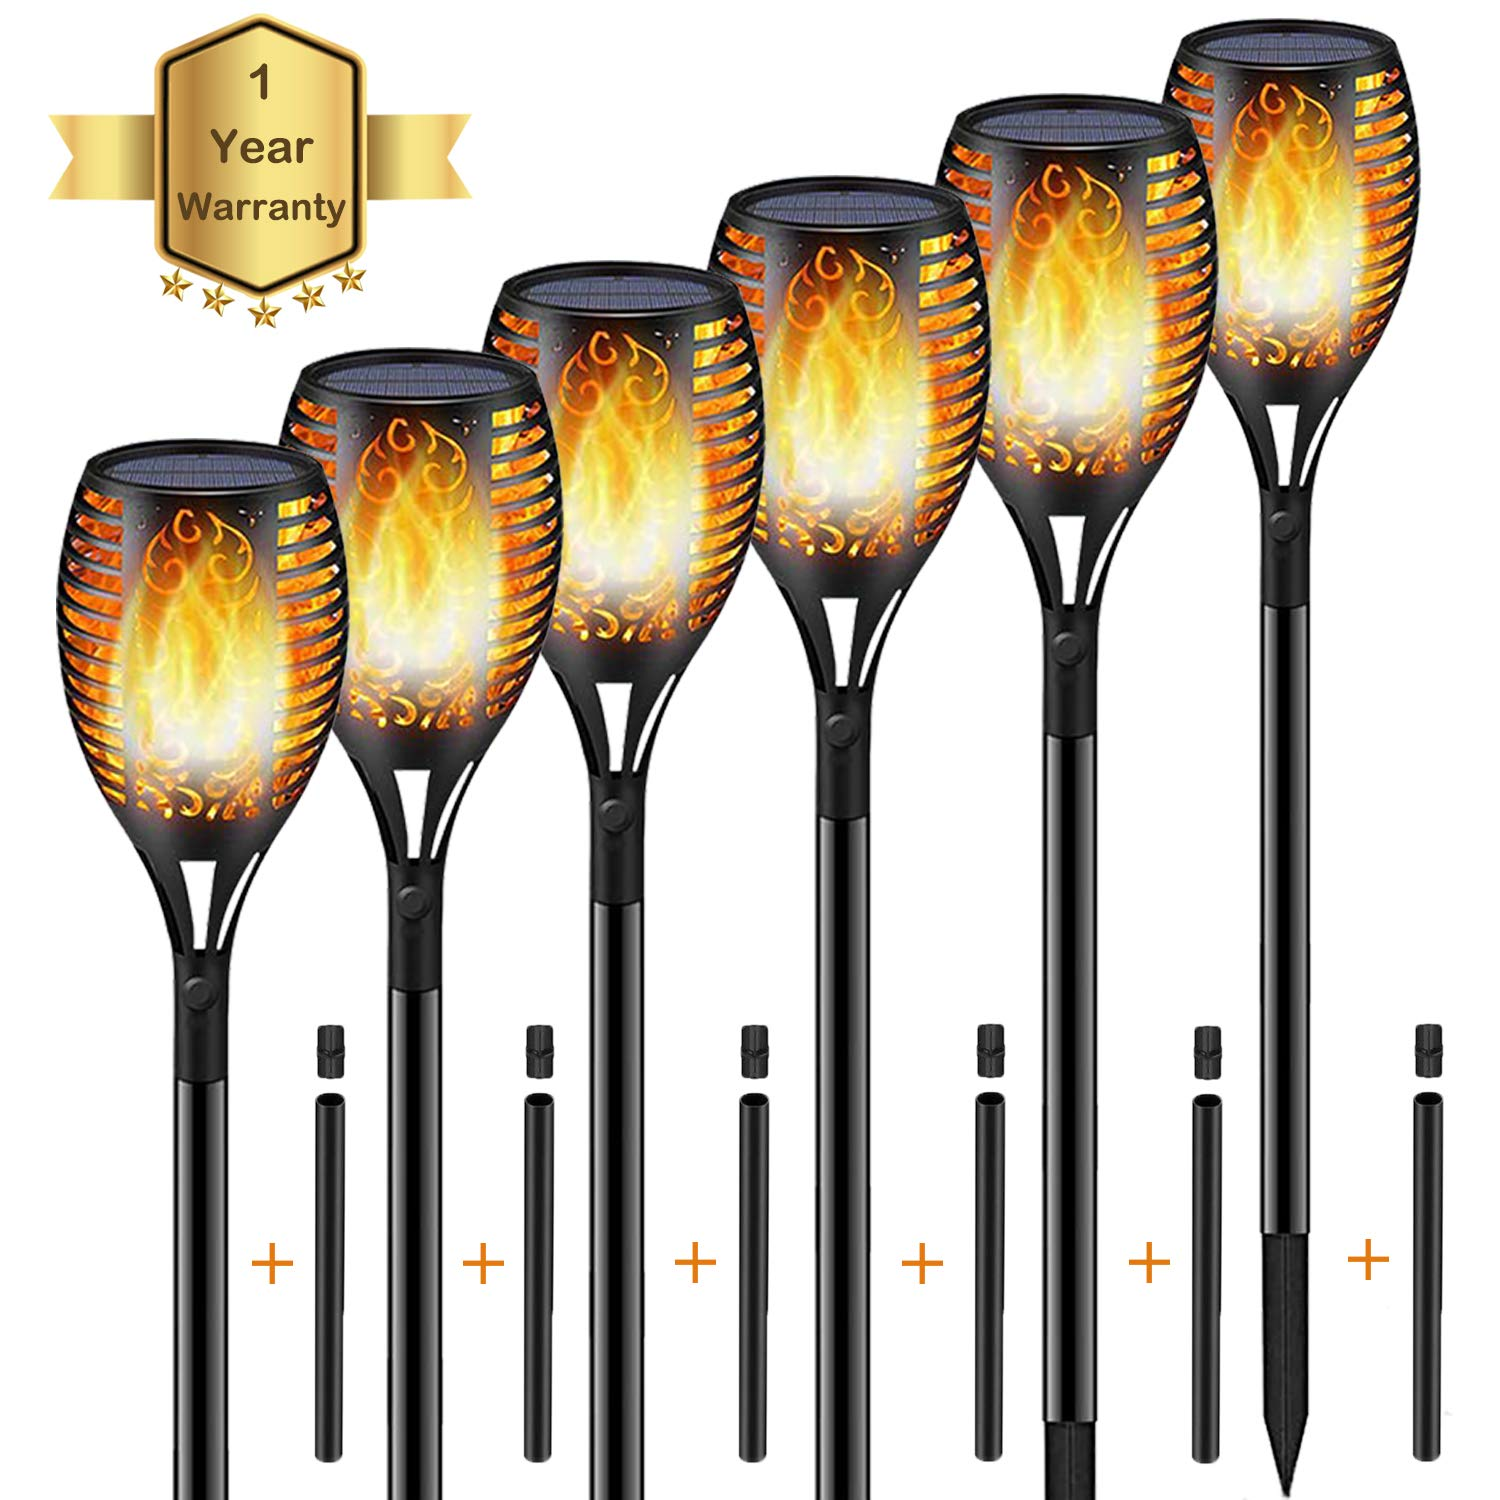 KISCHERS Solar Powered Led Torch Lights Warm Dancing Flickering Flame Dawn to Dusk Auto On/Off Outdoor Waterproof Garden Light Landscape Decoration Lighting for Patio Pool Pathway (6 Pack)